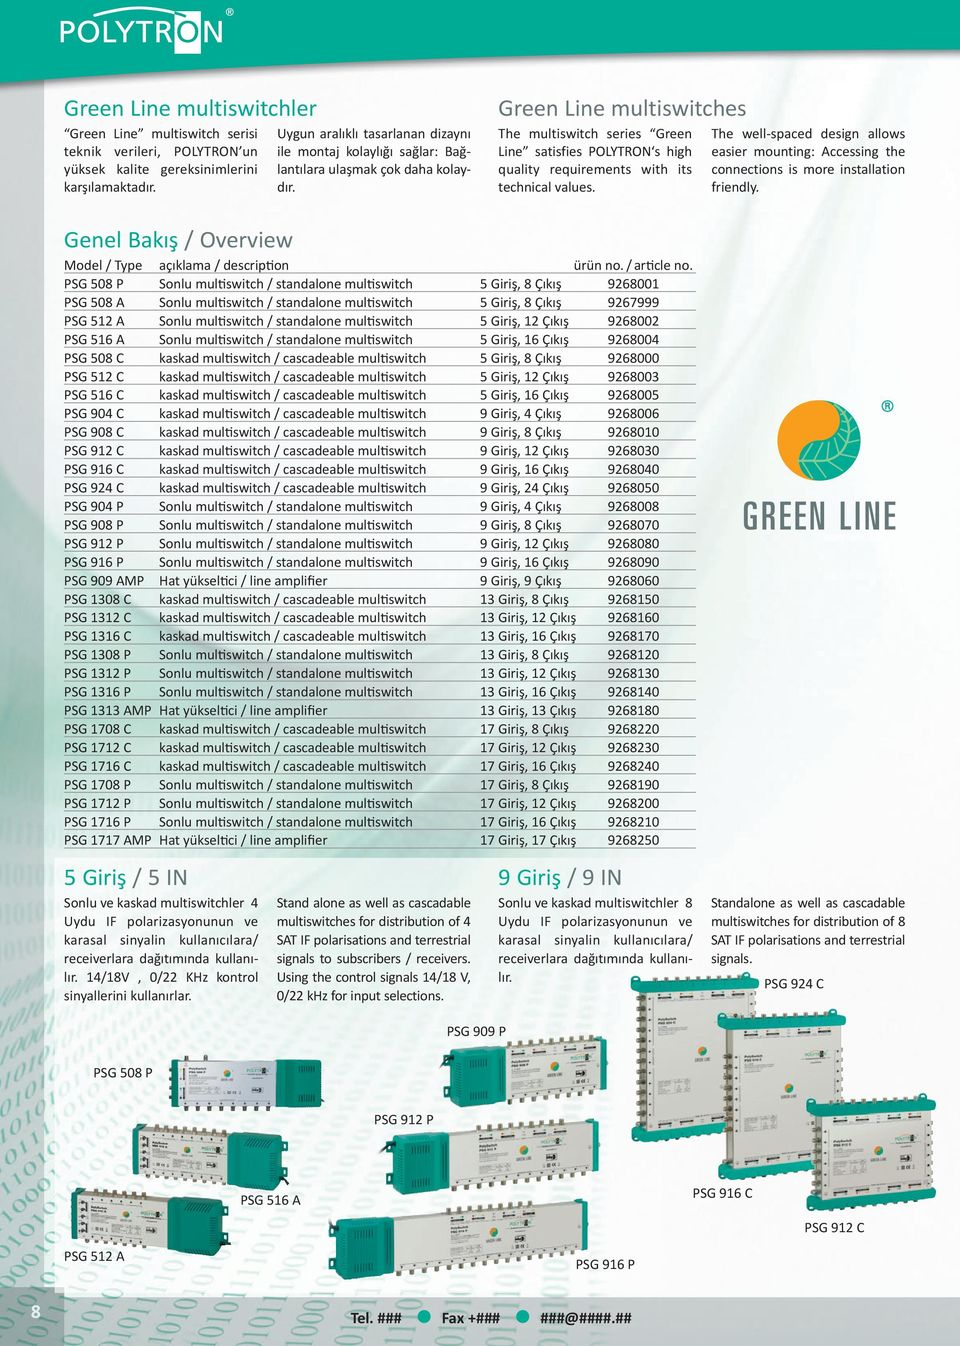 Green Line multiswitches The multiswitch series Green Line satisfies POLYTRON s high quality requirements with its technical values.